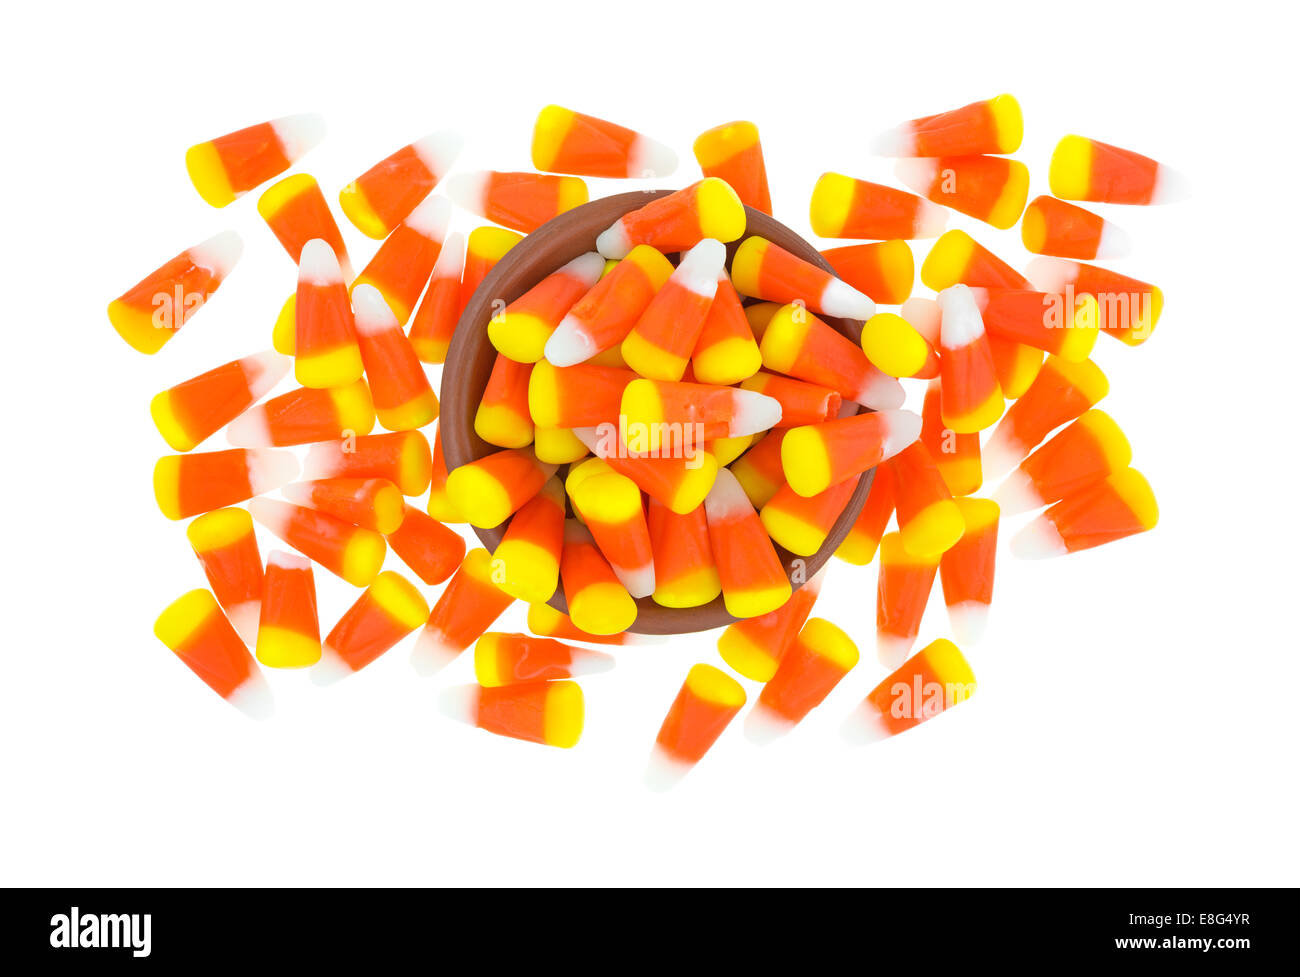 A mess of Halloween candy corn kernels on a white background with a small bowl in the center. - Stock Image